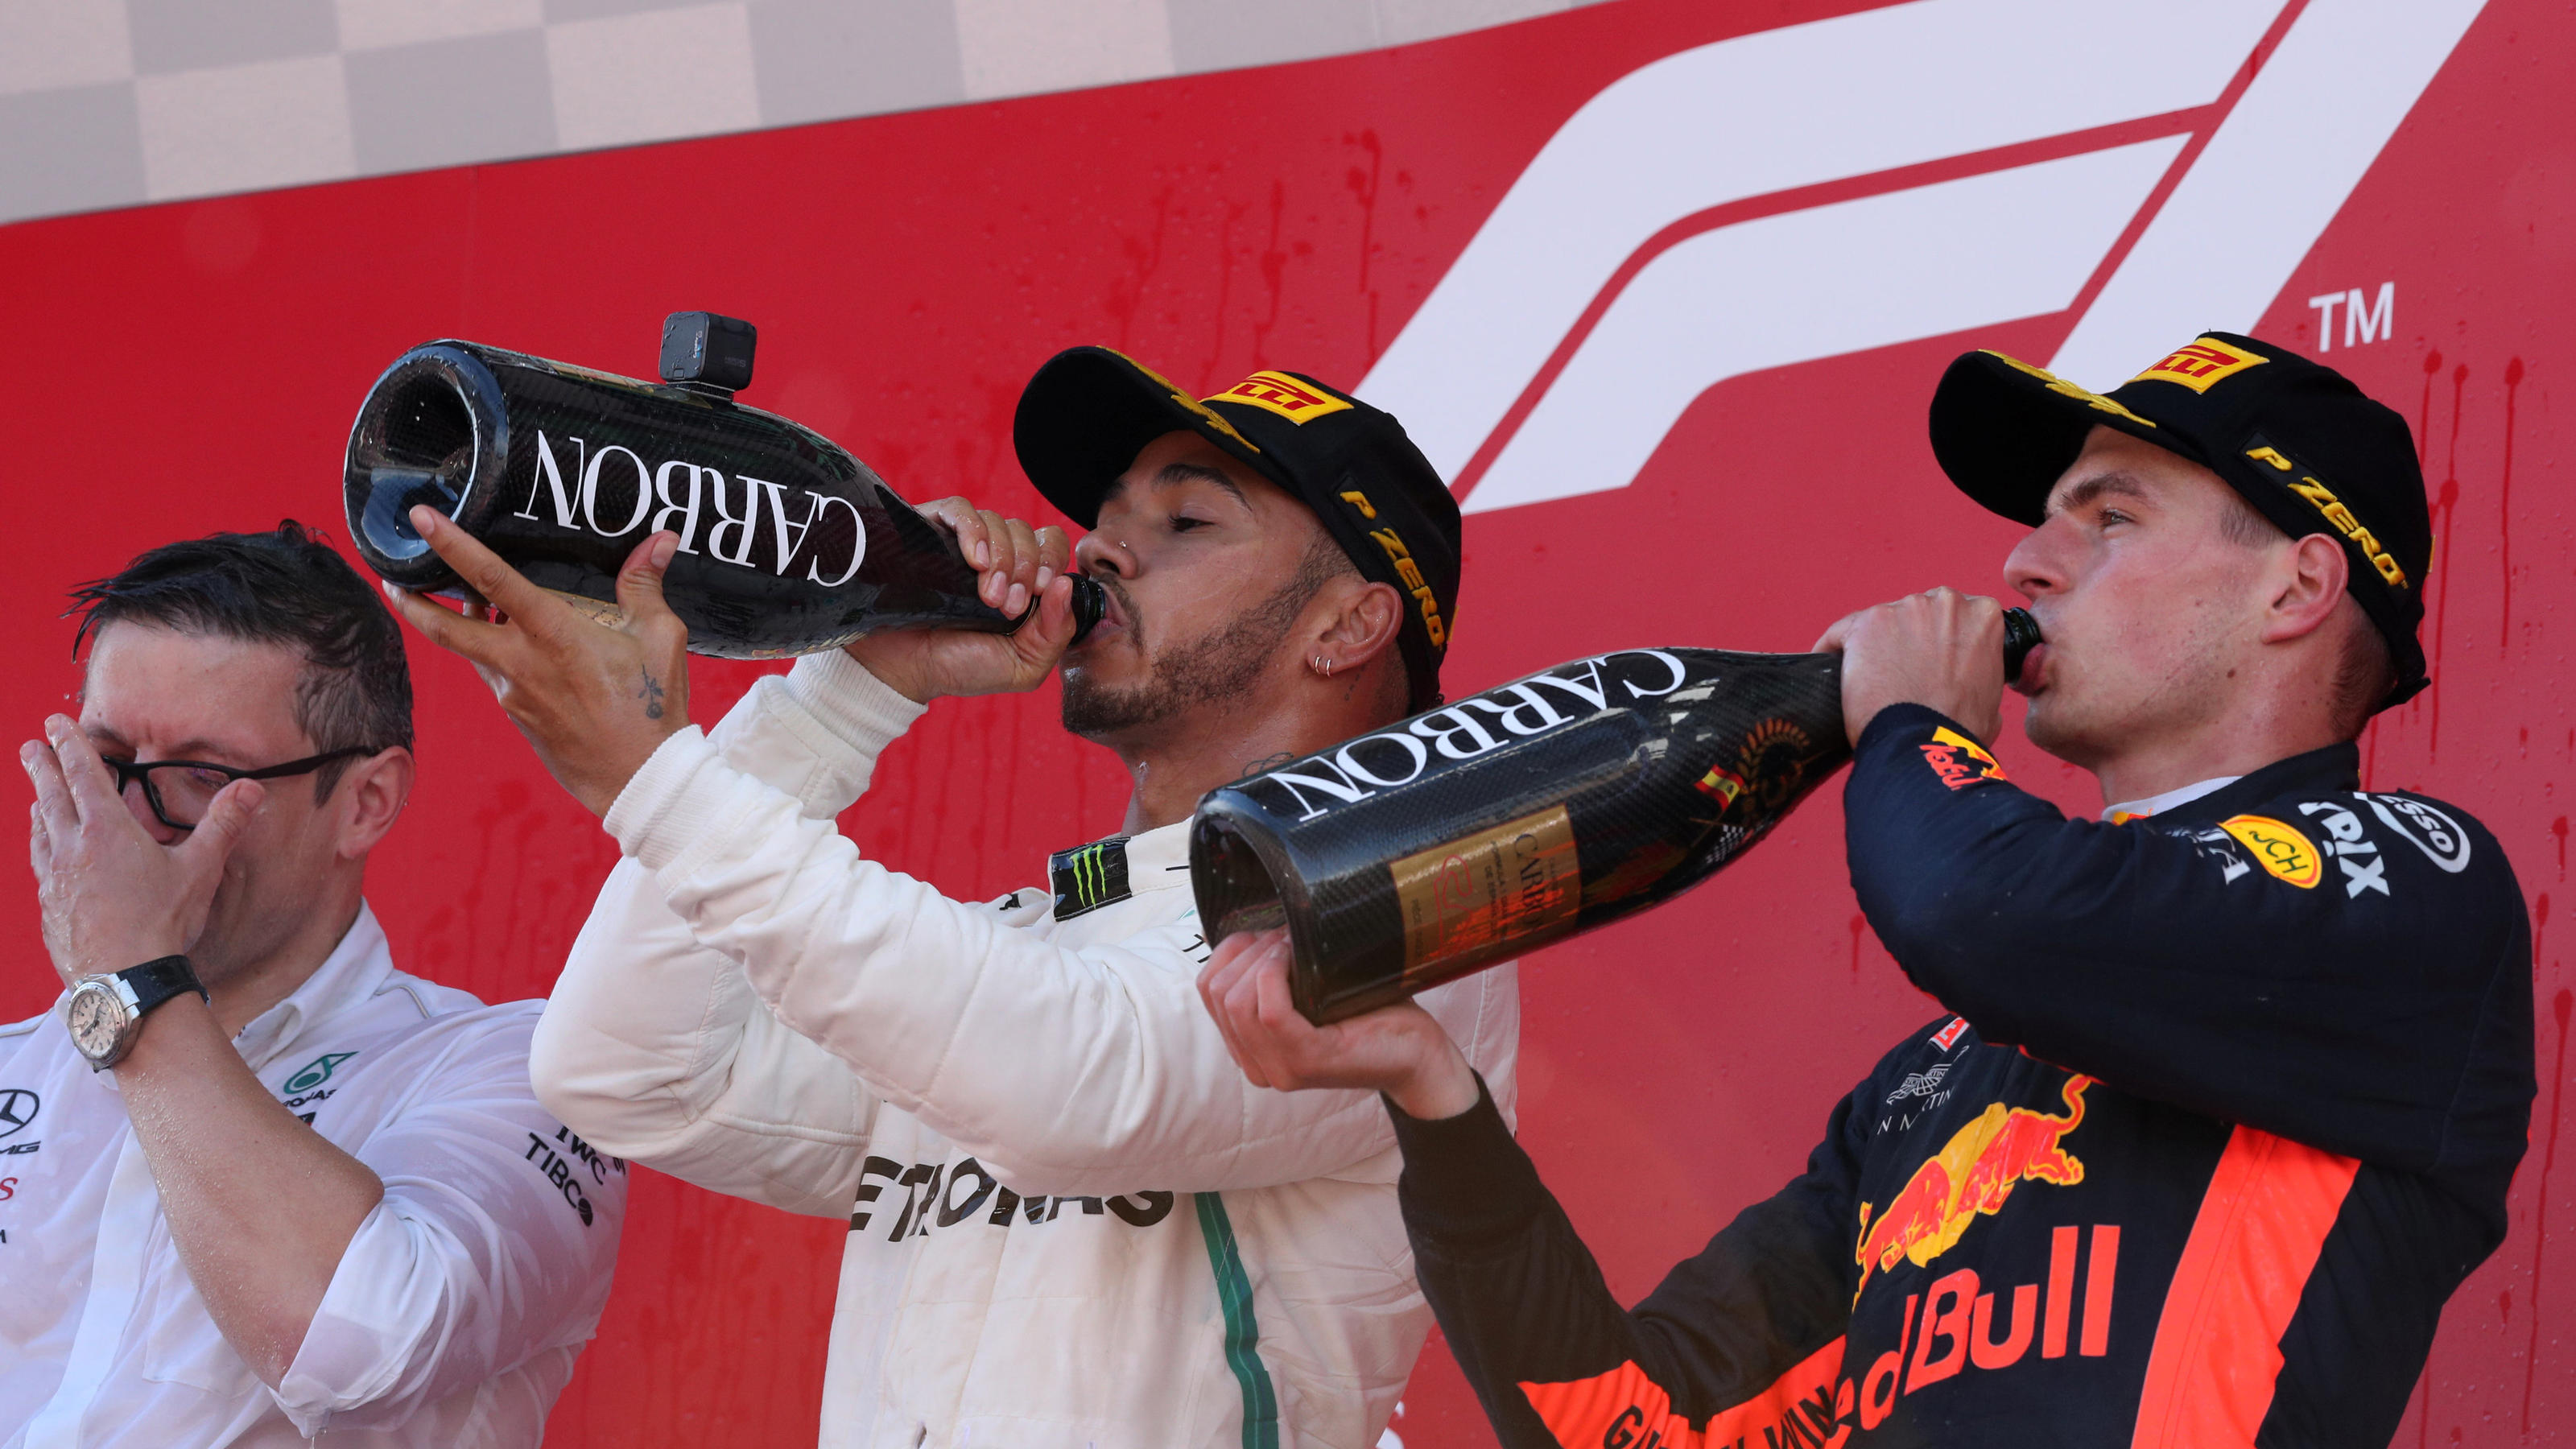 Formula One F1 - Spanish Grand Prix - Circuit de Barcelona-Catalunya, Barcelona, Spain - May 13, 2018   Mercedes' Lewis Hamilton and Red Bull's Max Verstappen drink champagne as they celebrate on the podium after finishing first and third respect